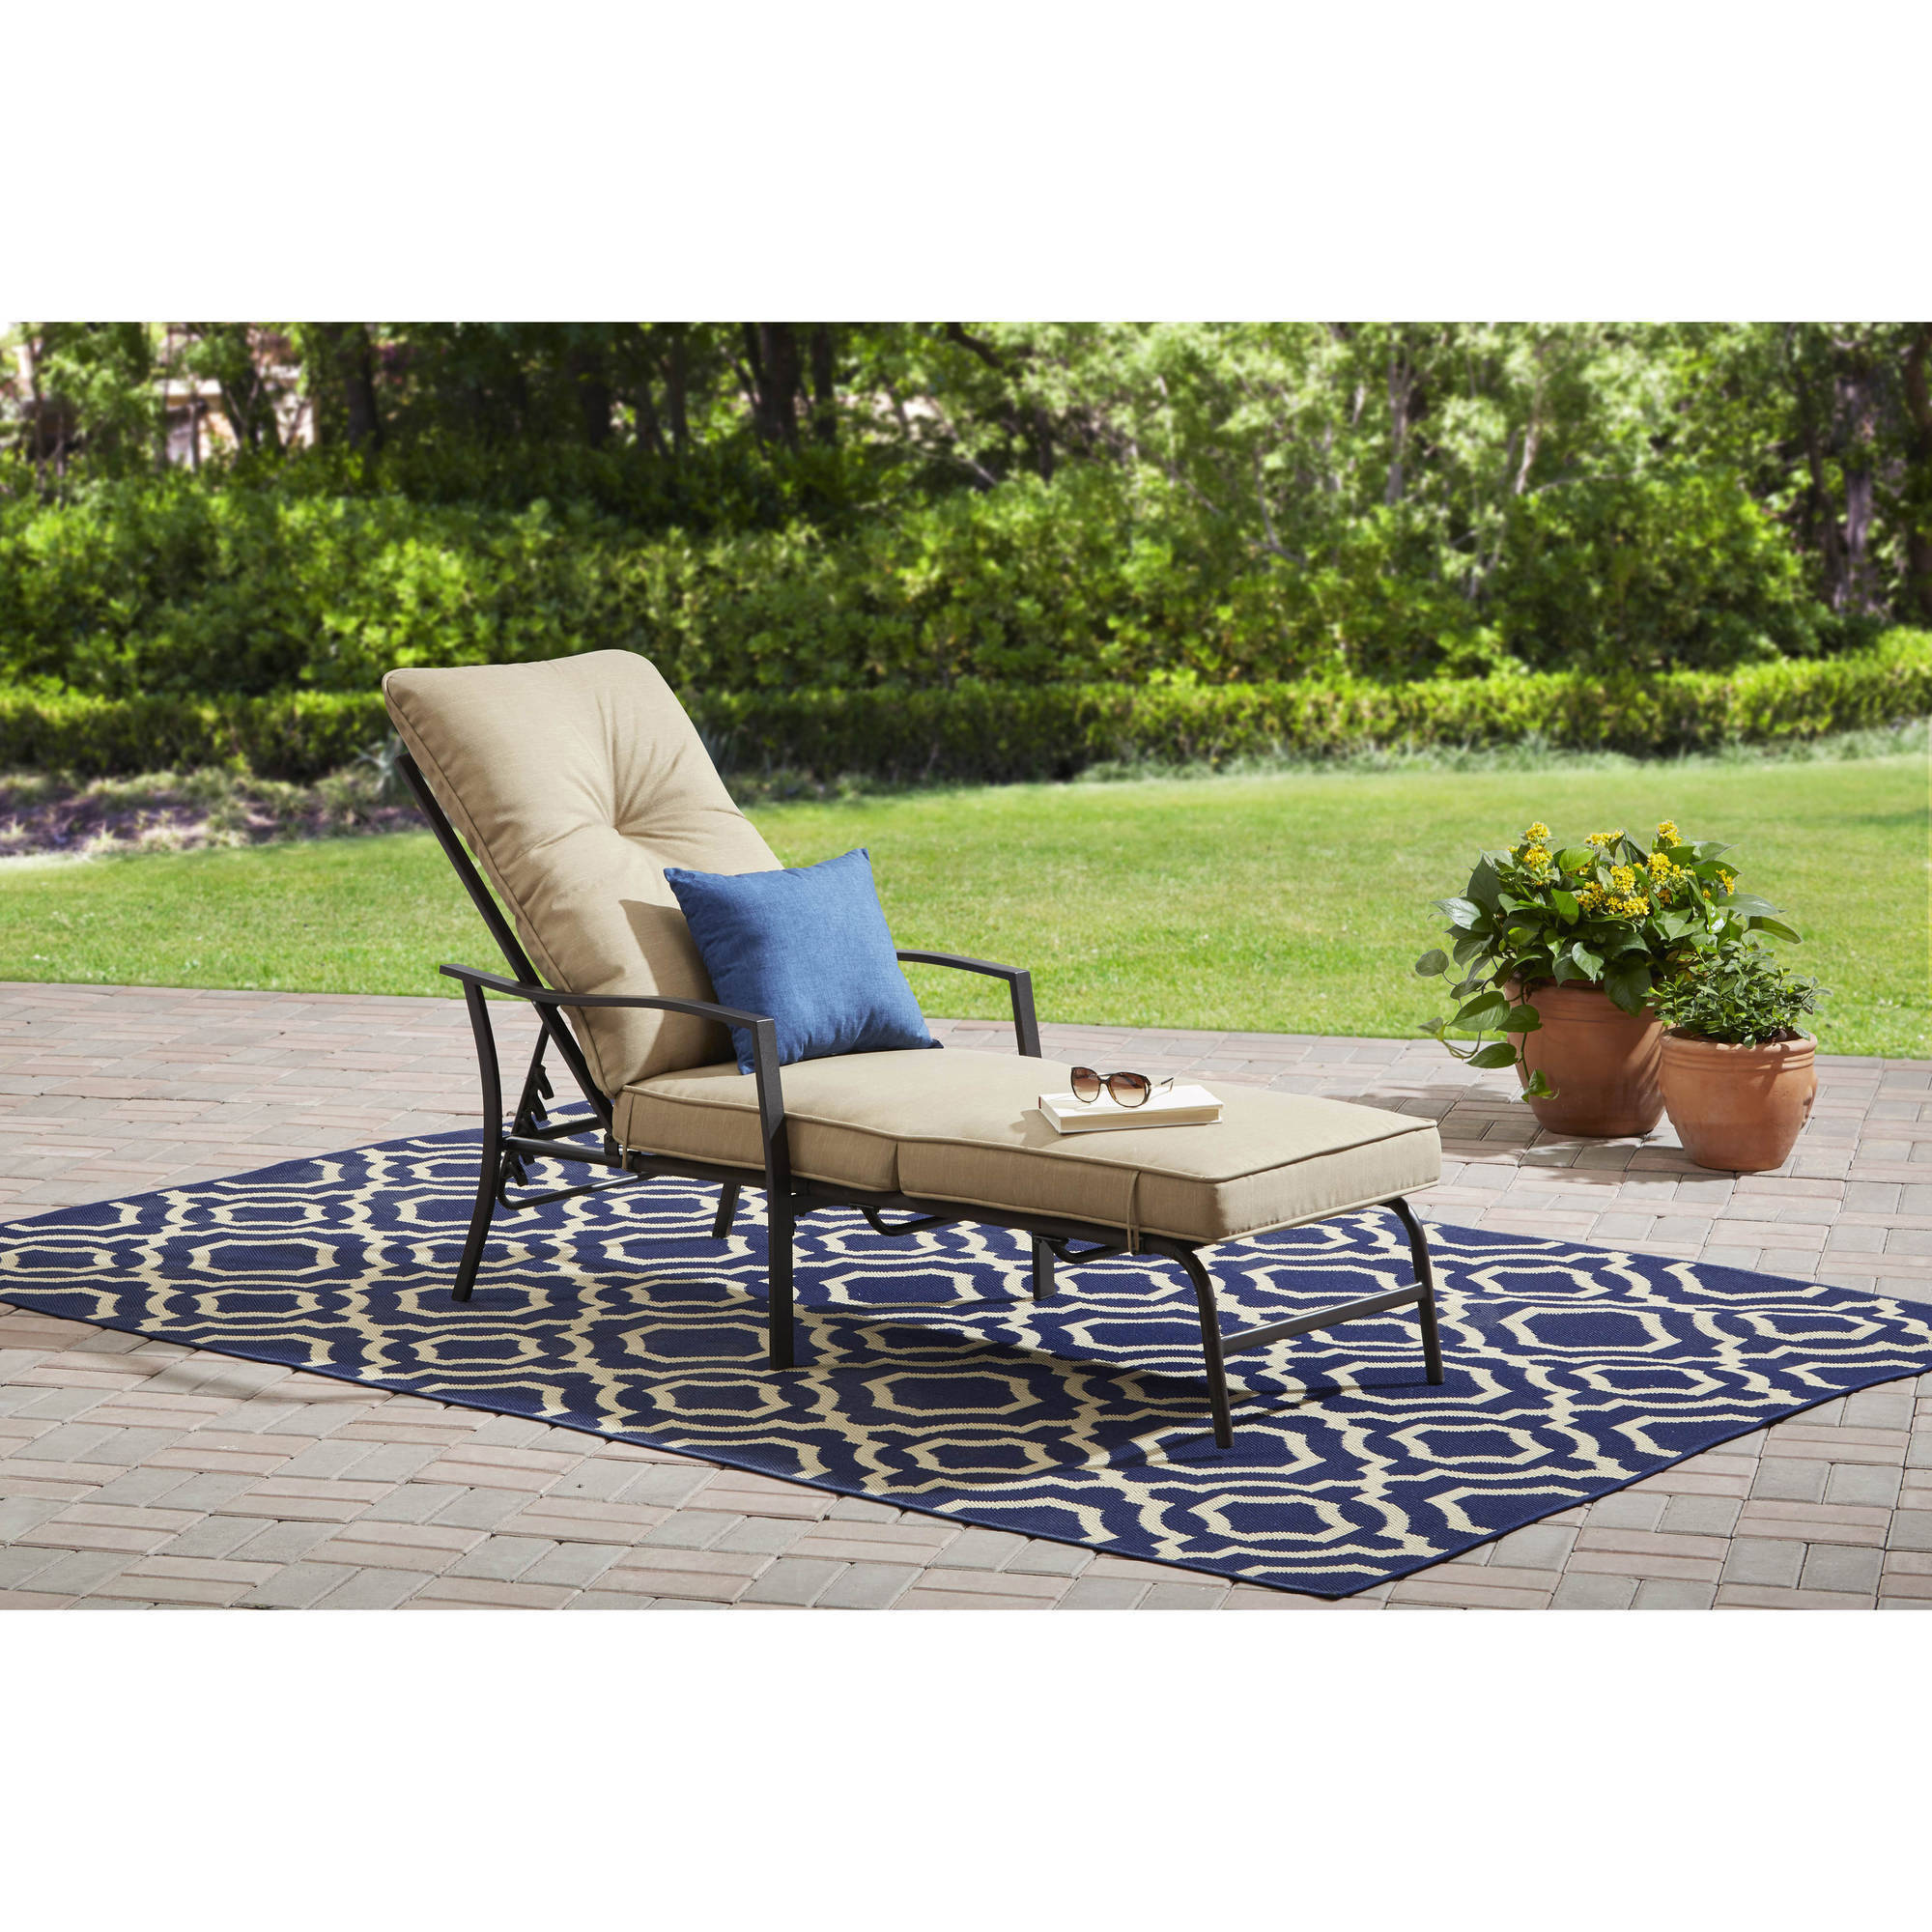 Mainstays Forest Hills Outdoor Chaise Lounge, Espresso Frame by Mainstays